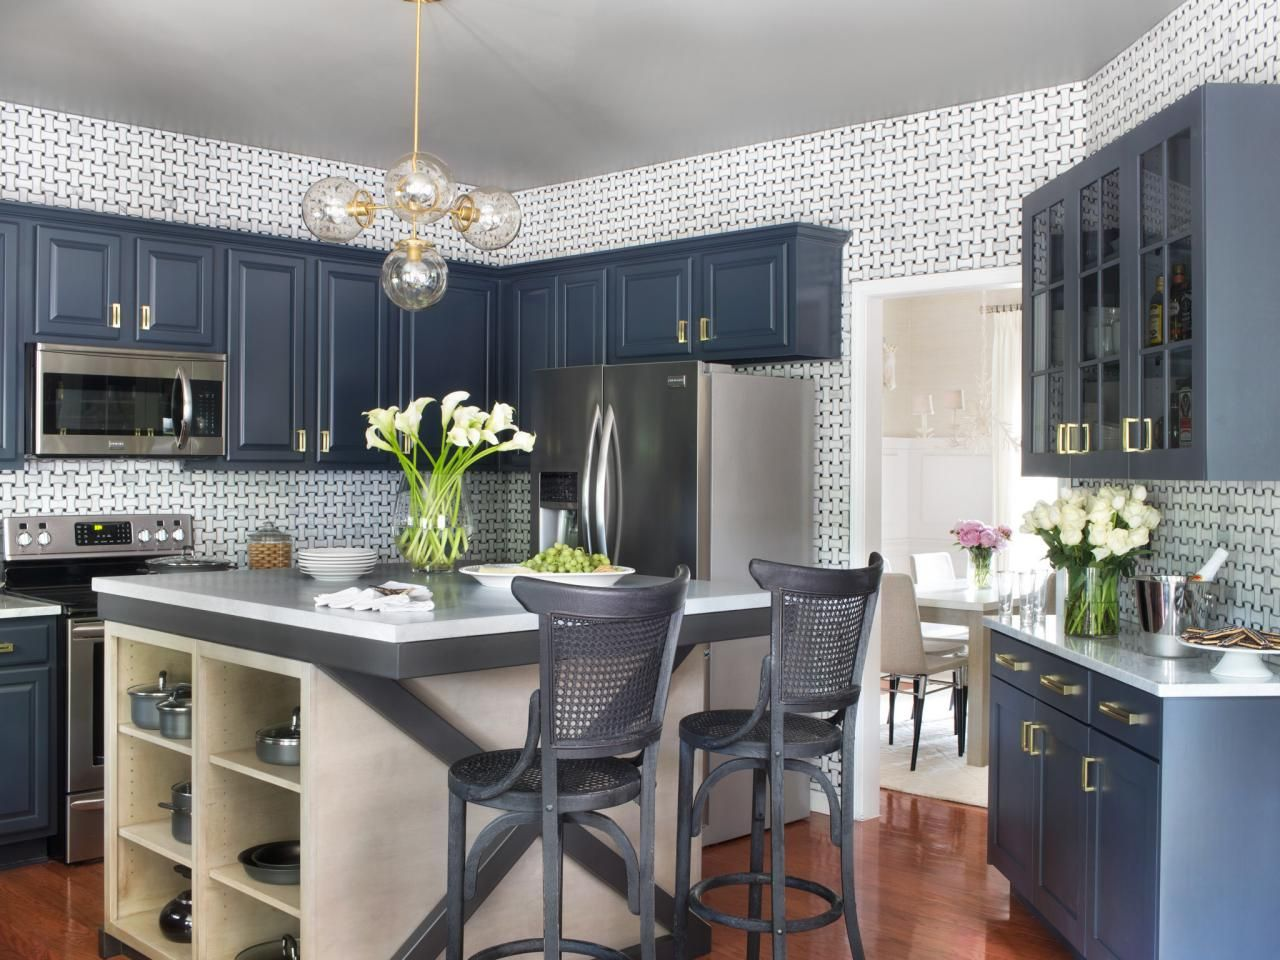 Simple Ways to Revamp Your Kitchen   Higher design, Work surface and ...